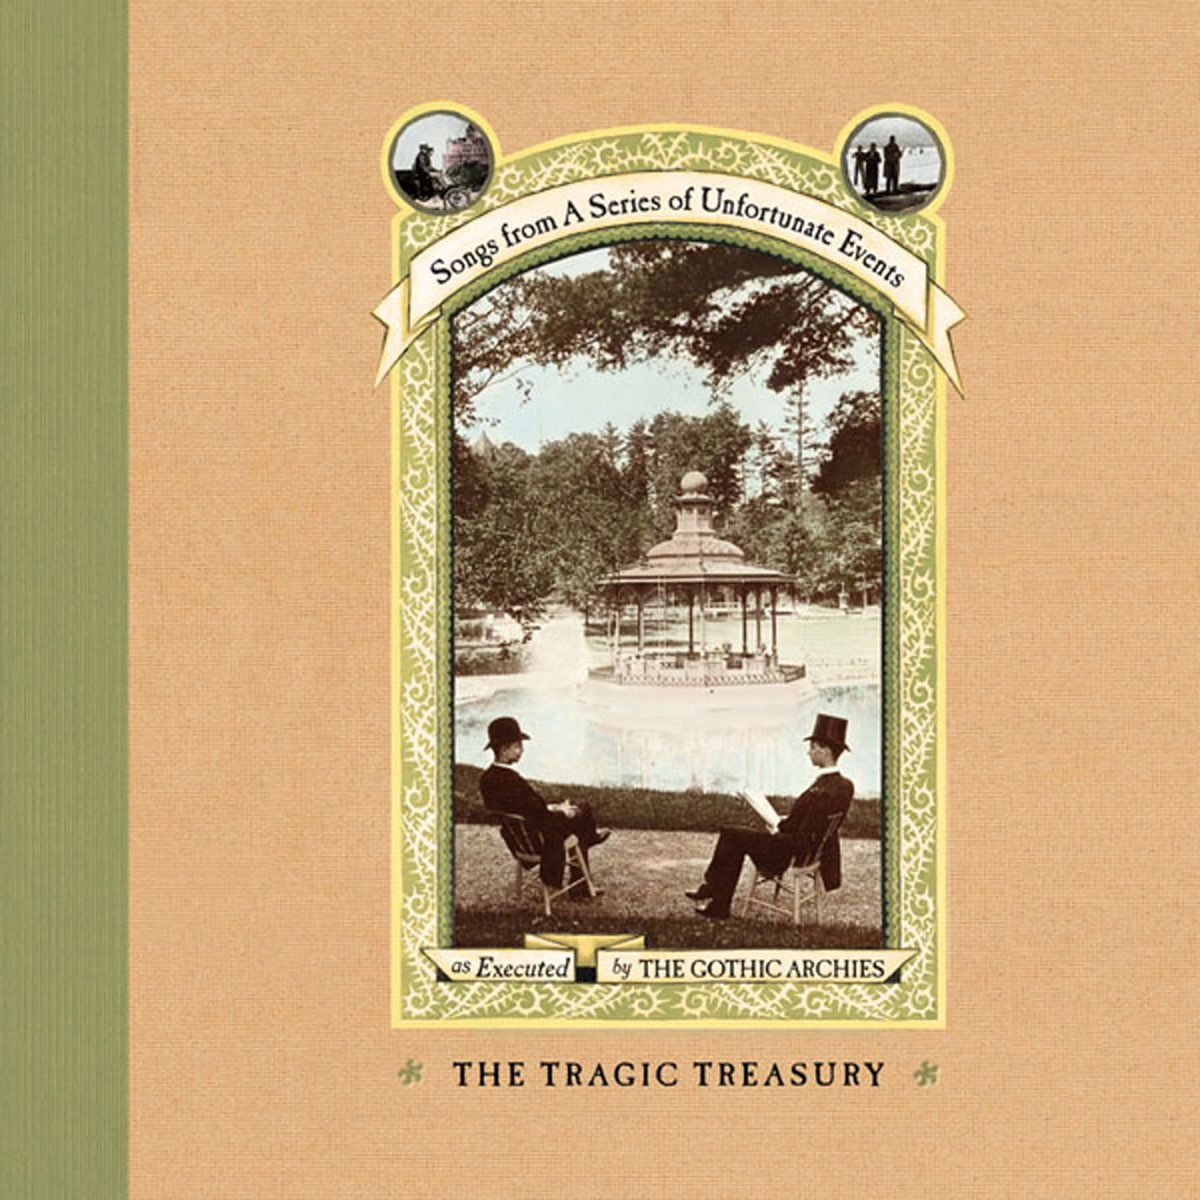 Gothic Archies, The Tragic Treasury: Songs from a Series of Unfortunate Events